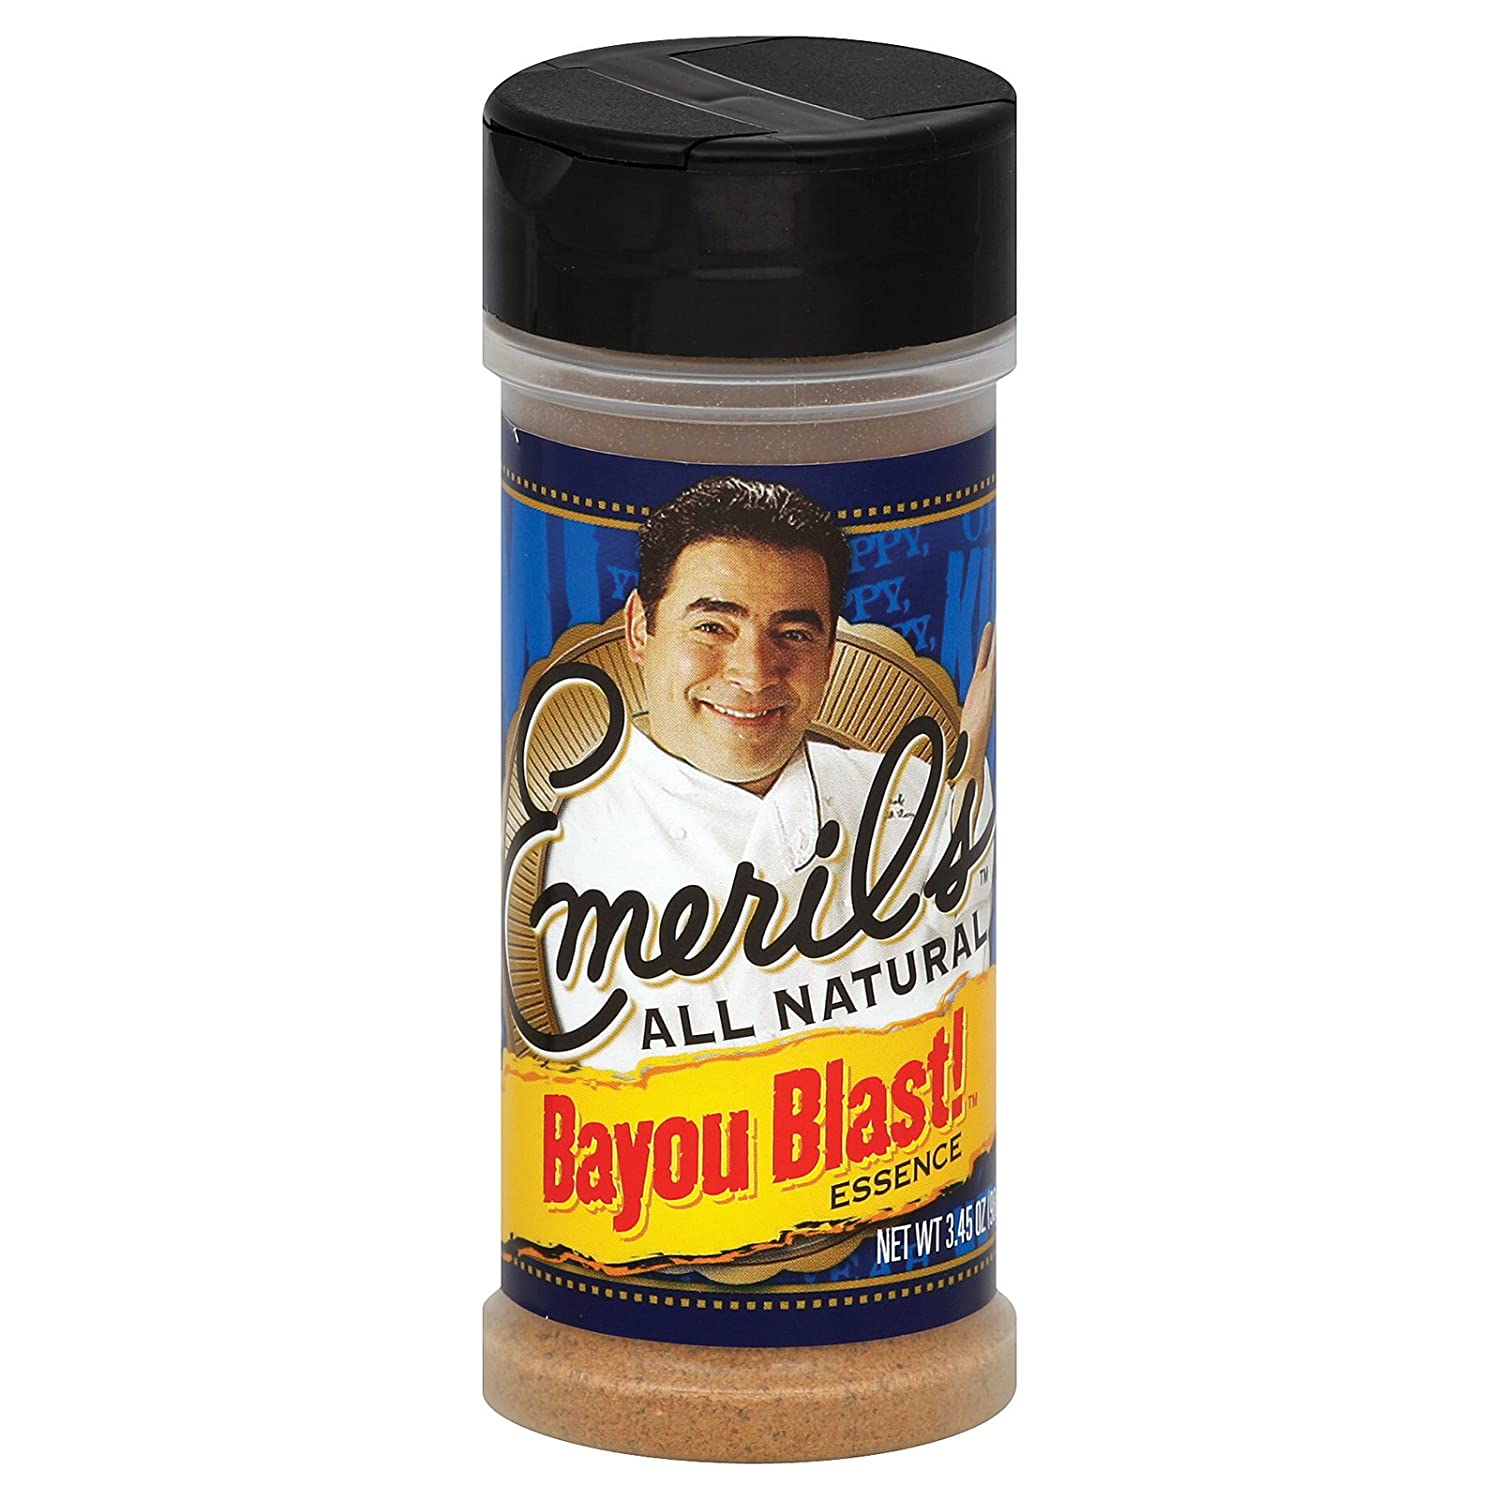 Amazon.com : Emeril's All Natural Essence Seasoning - Cajun - 3.45 oz :  Mixed Spices And Seasonings : Grocery & Gourmet Food